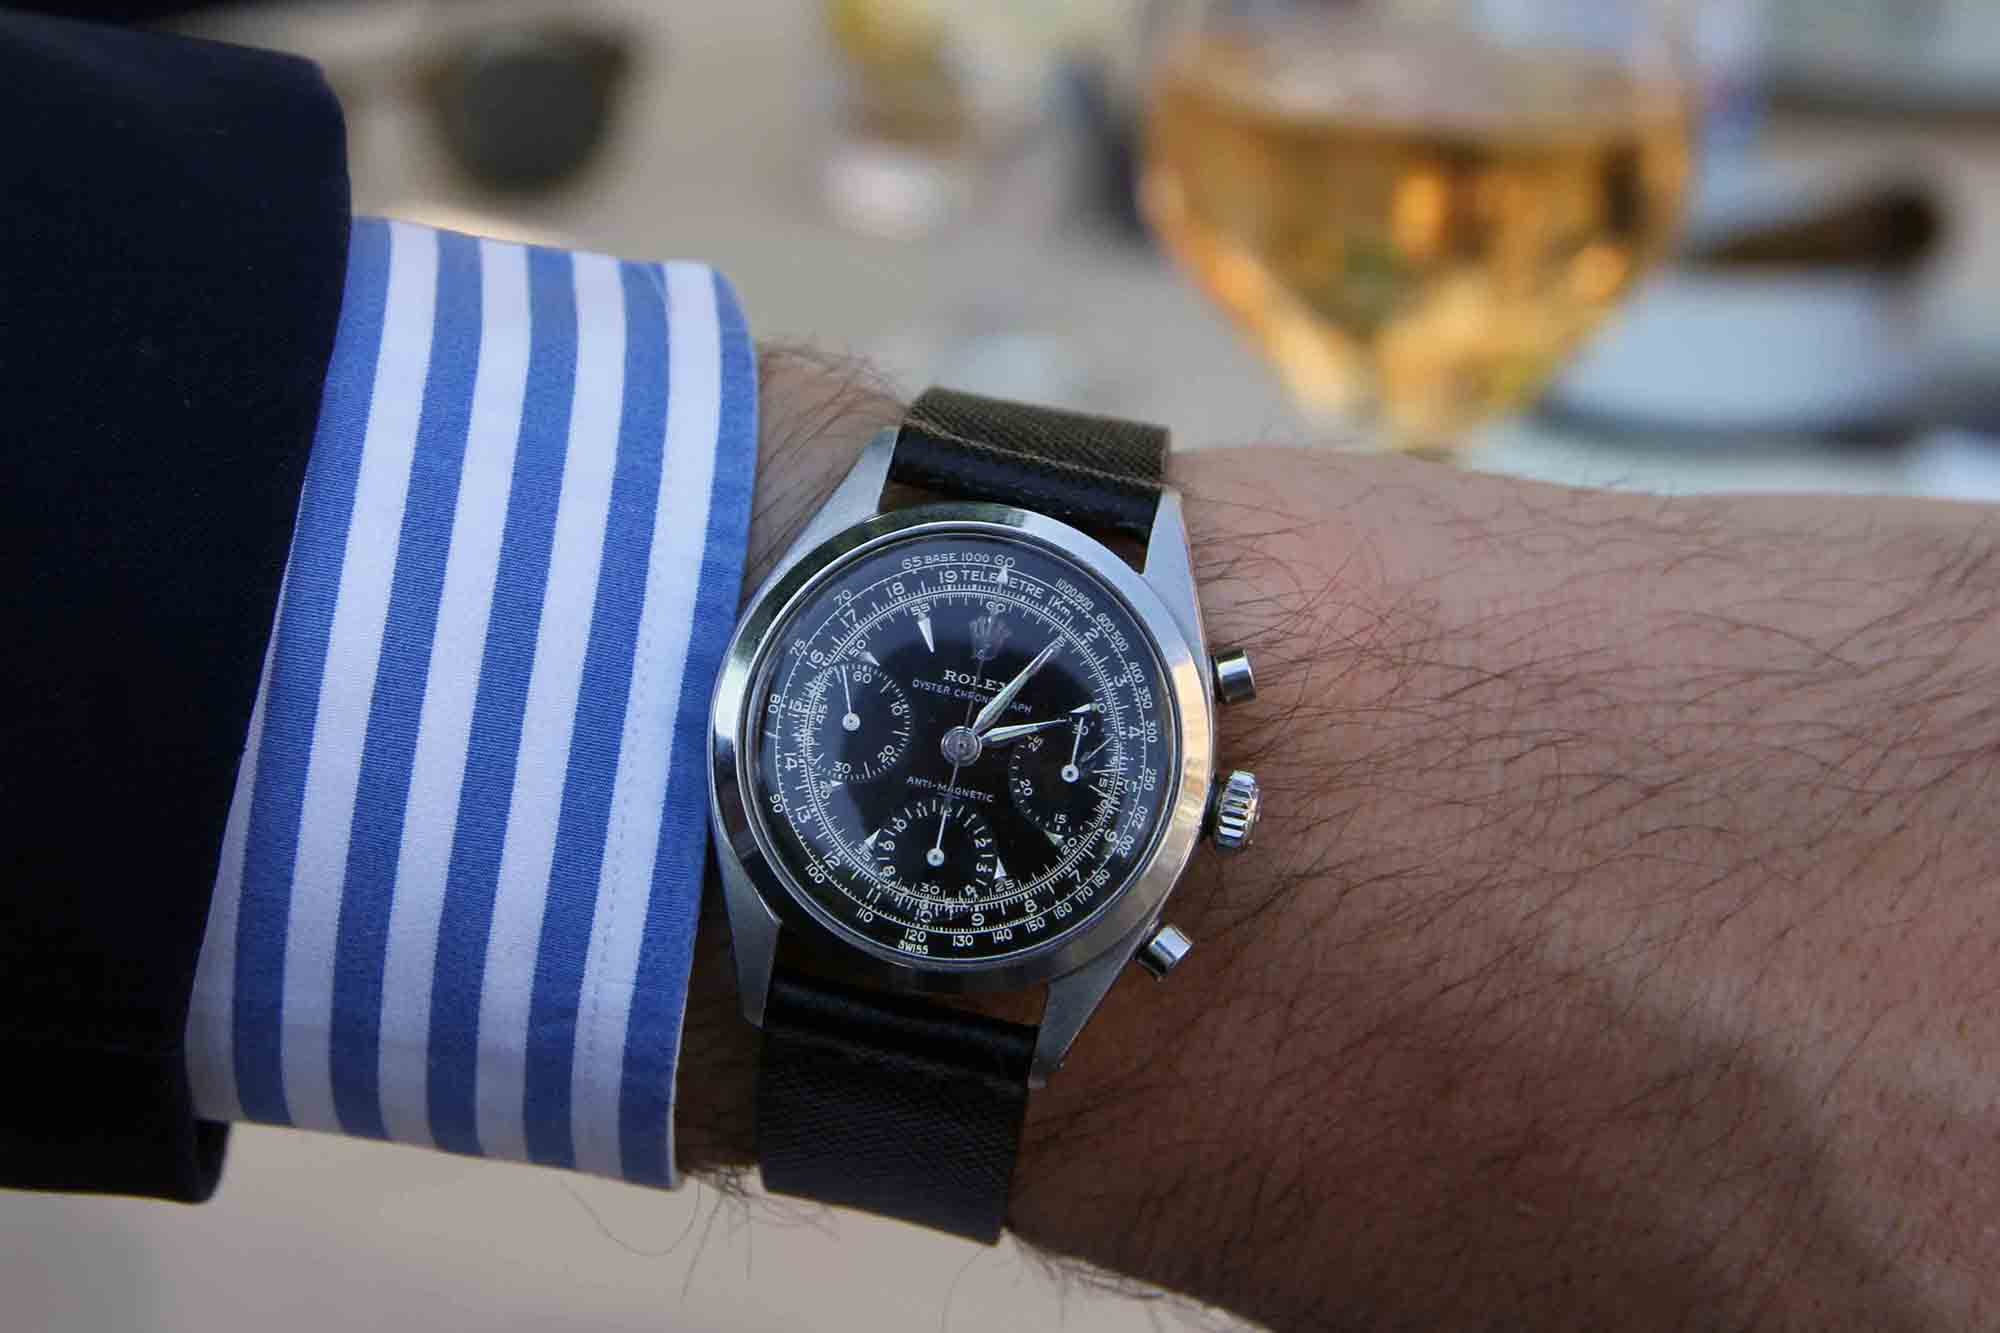 1960s Rolex reference 6234  Photo Report: Watch And Car Spotting At The 2016 Concorso d'Eleganza Villa d'Este With A. Lange & Söhne Photo Report: Watch And Car Spotting At The 2016 Concorso d'Eleganza Villa d'Este With A. Lange & Söhne 6